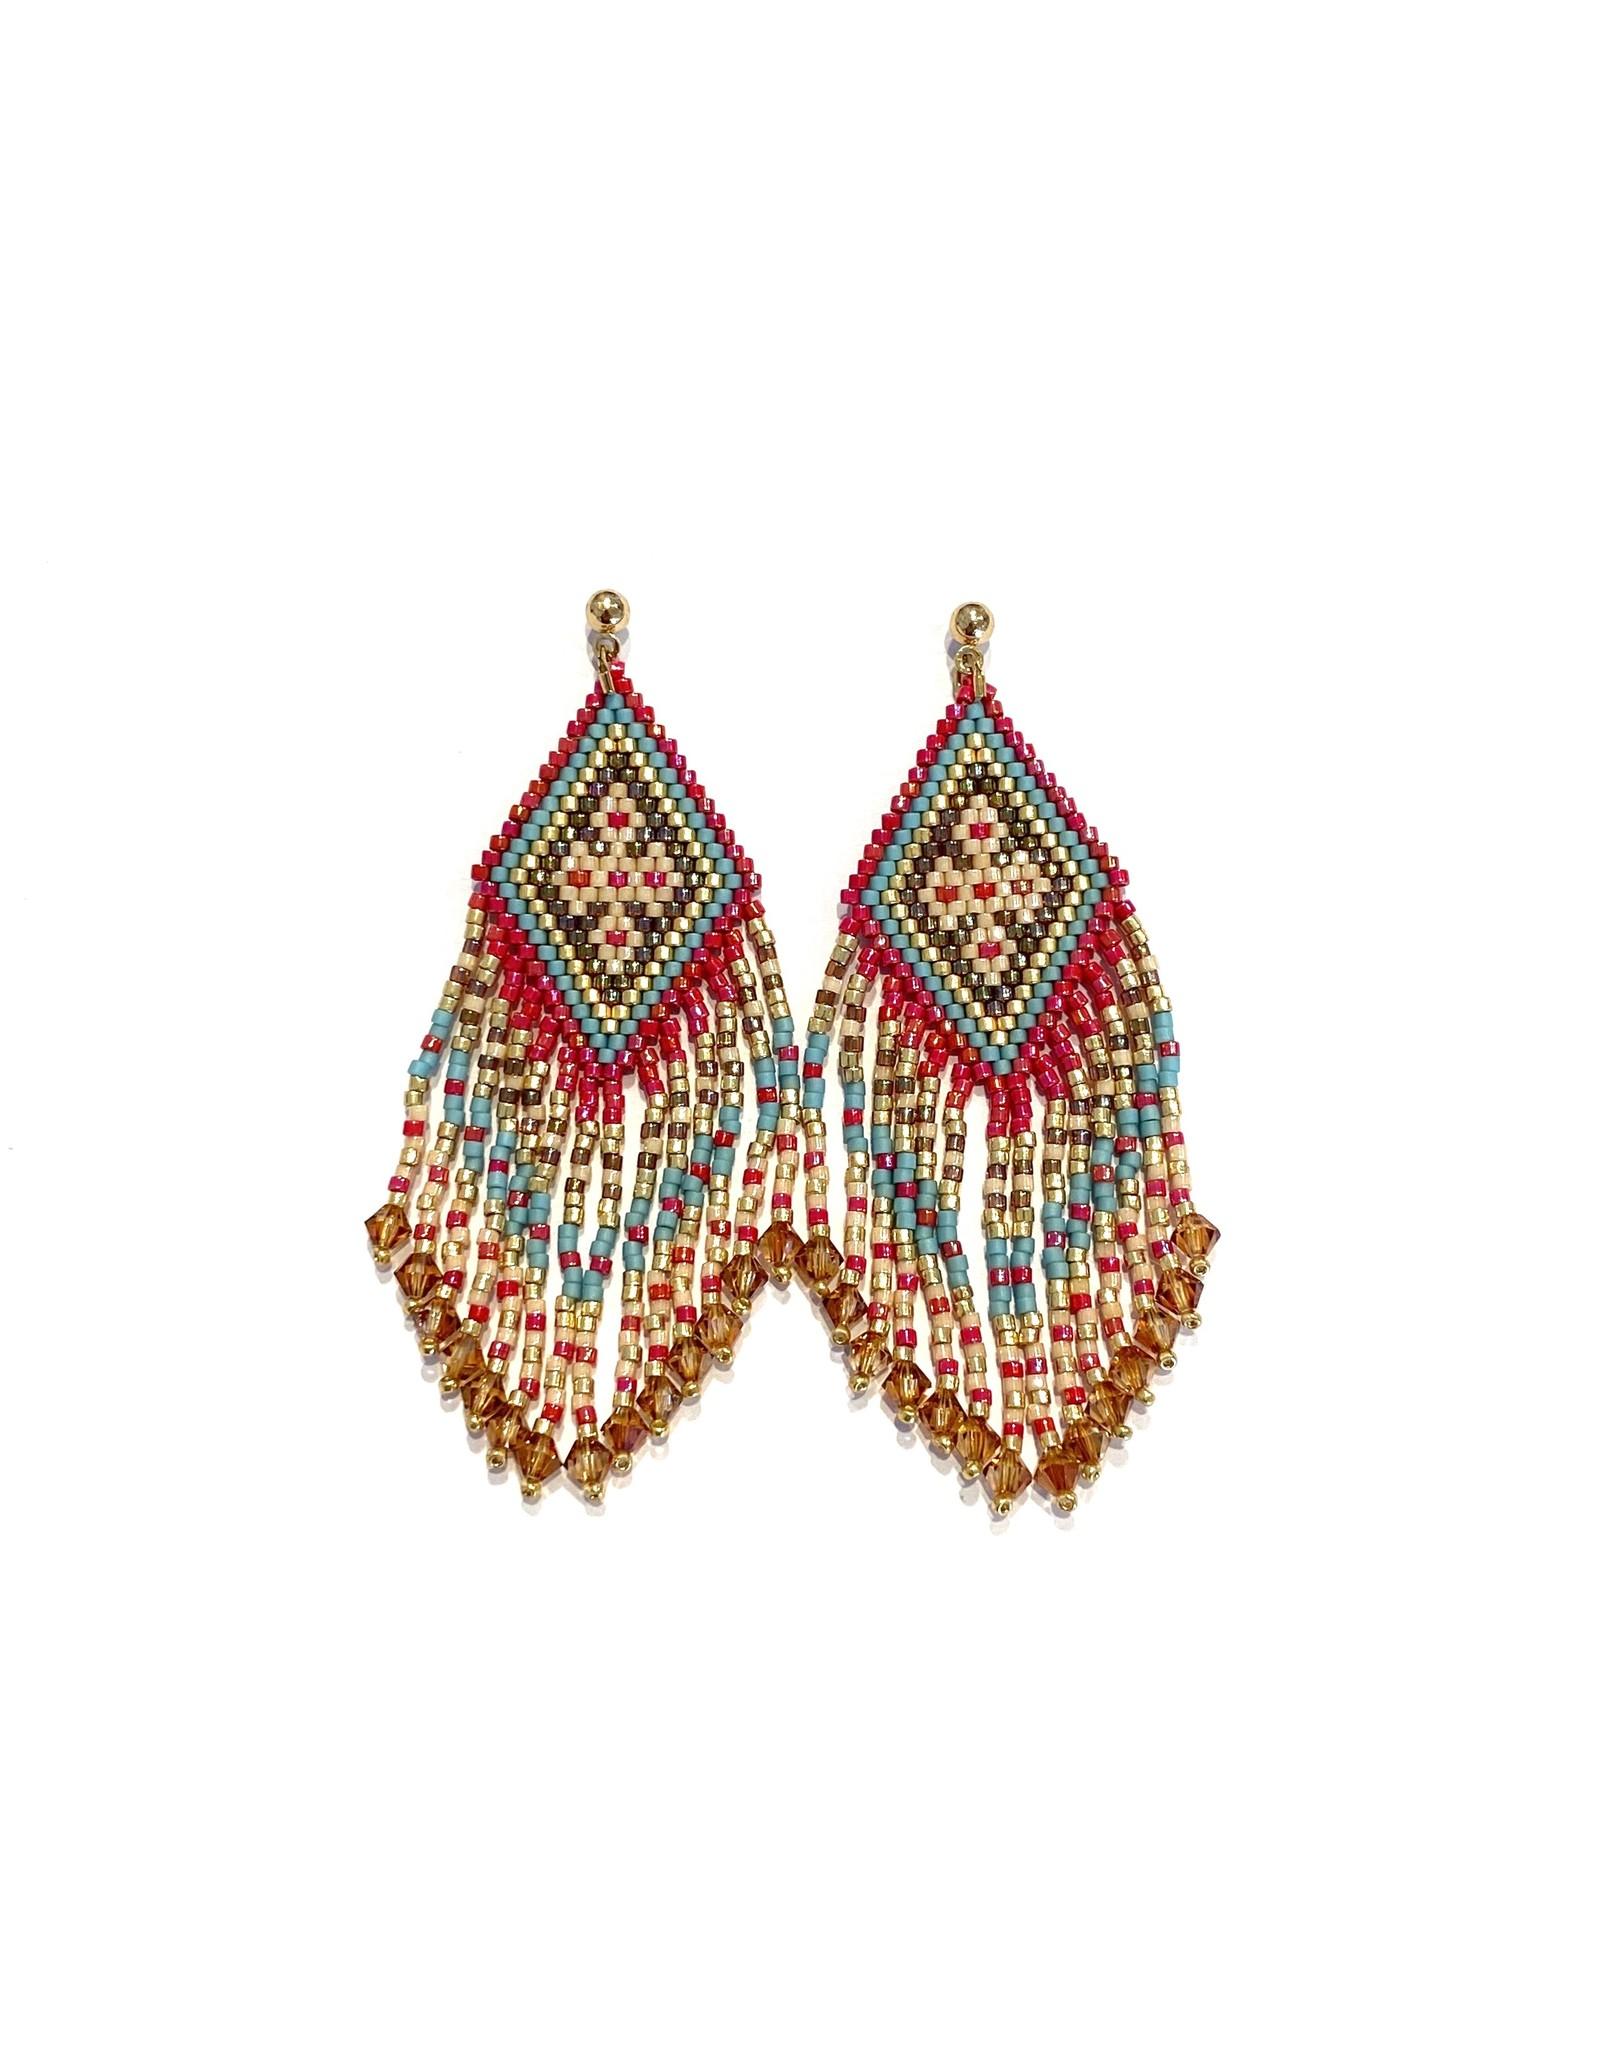 Burtsie Earrings